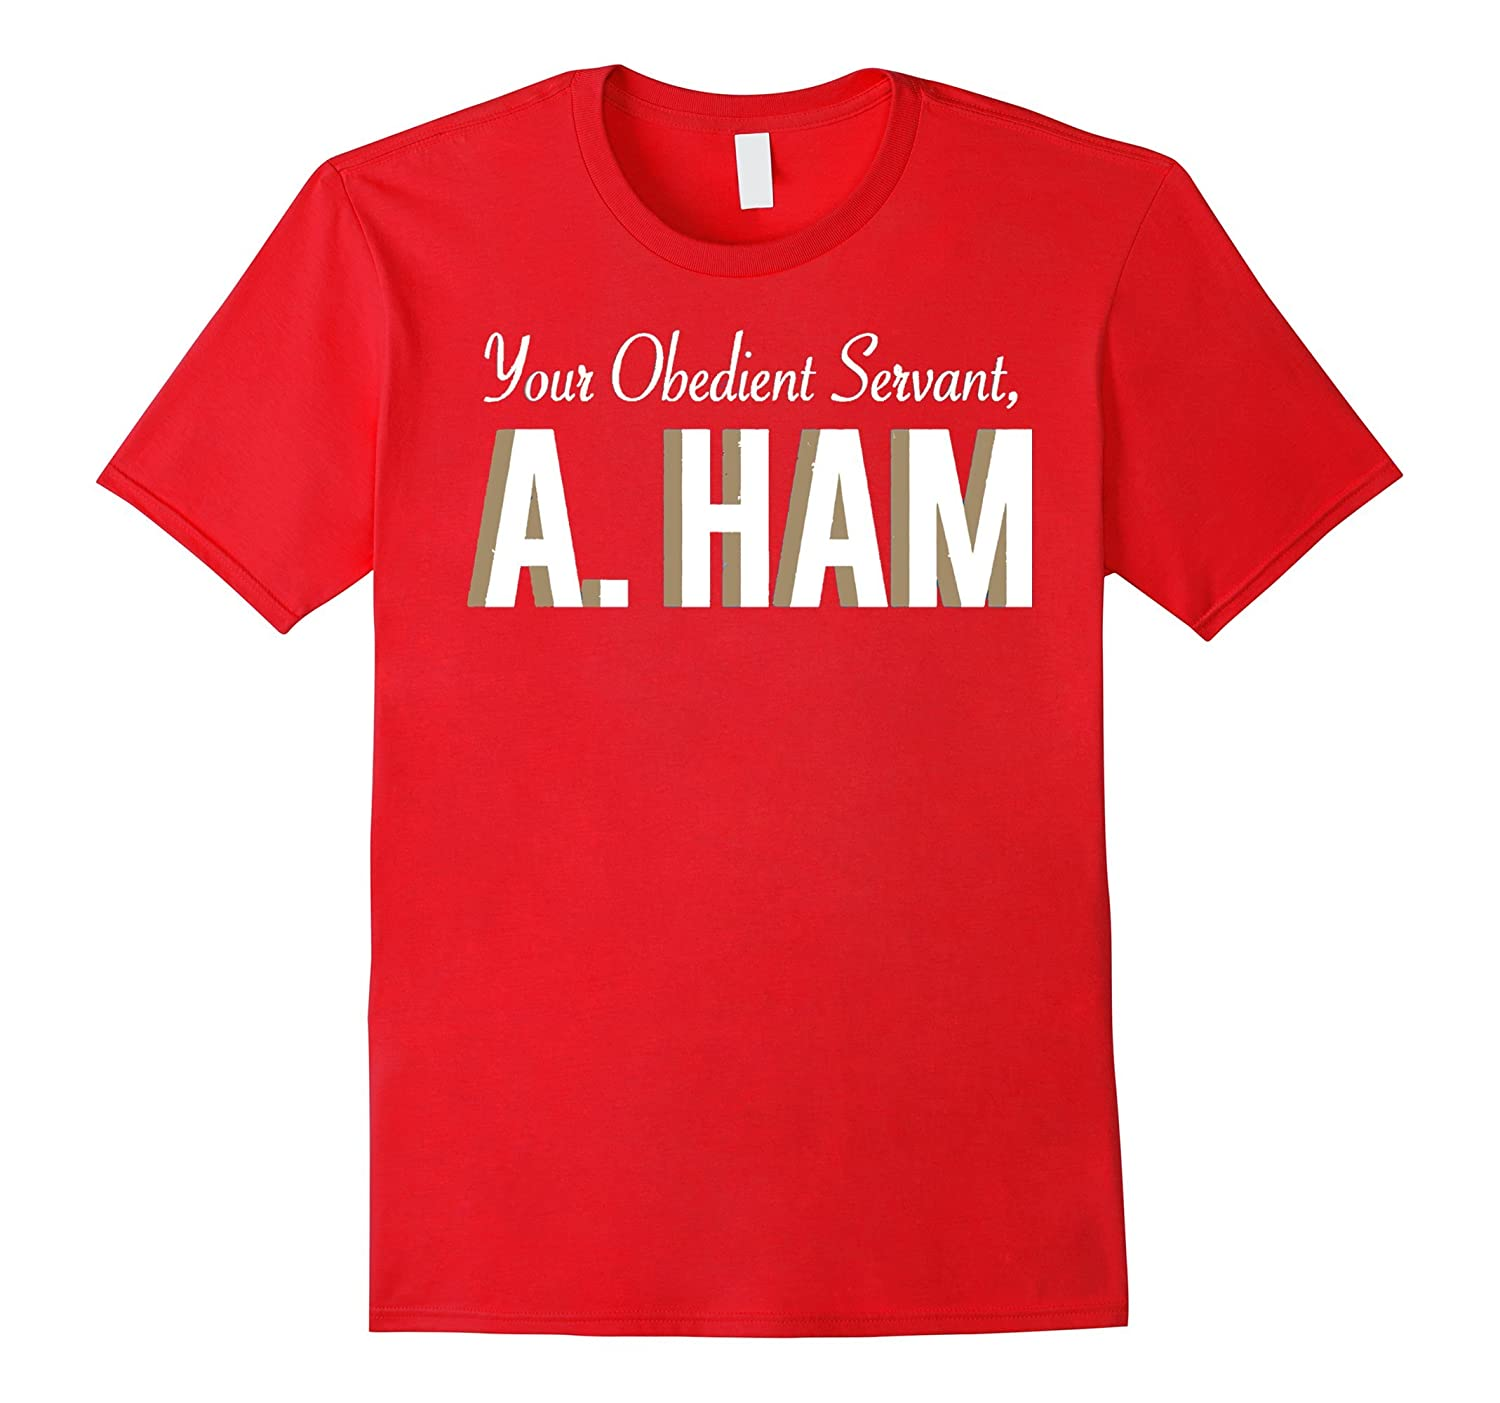 Your Obedient Servant, A. Ham Shirt Hight Quality-Art